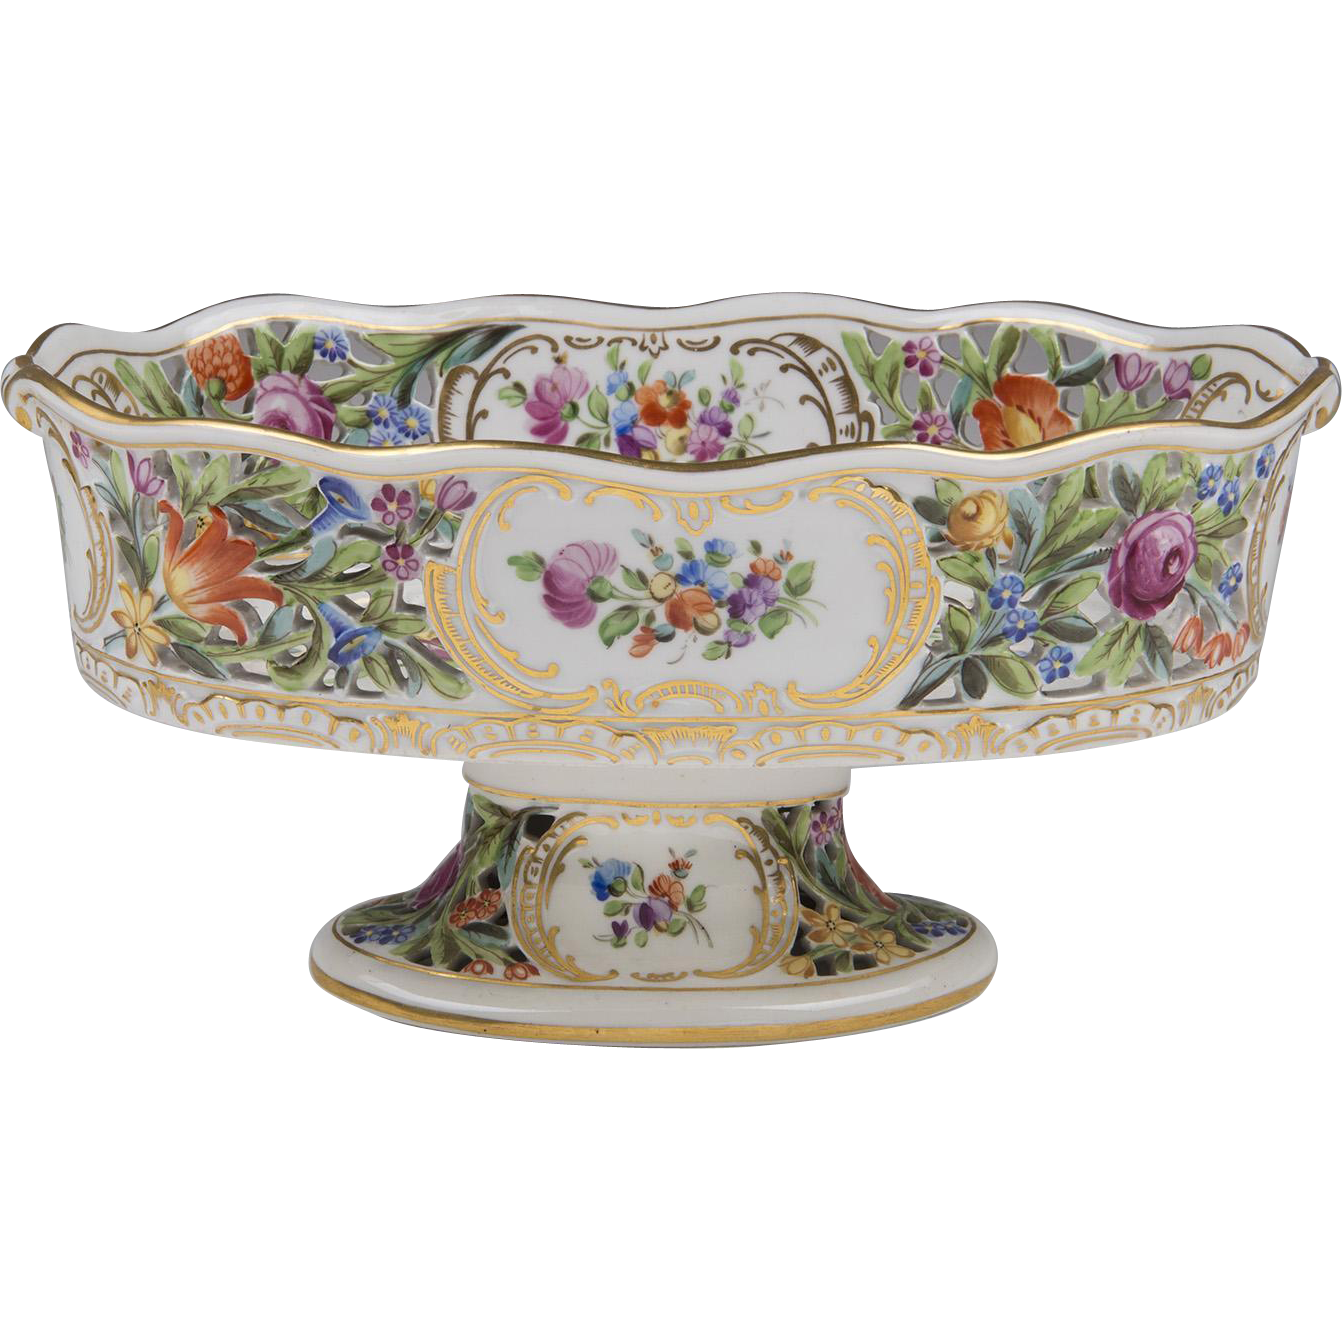 Carl Thieme Dresden Porcelain Reticulated Bolted Compote